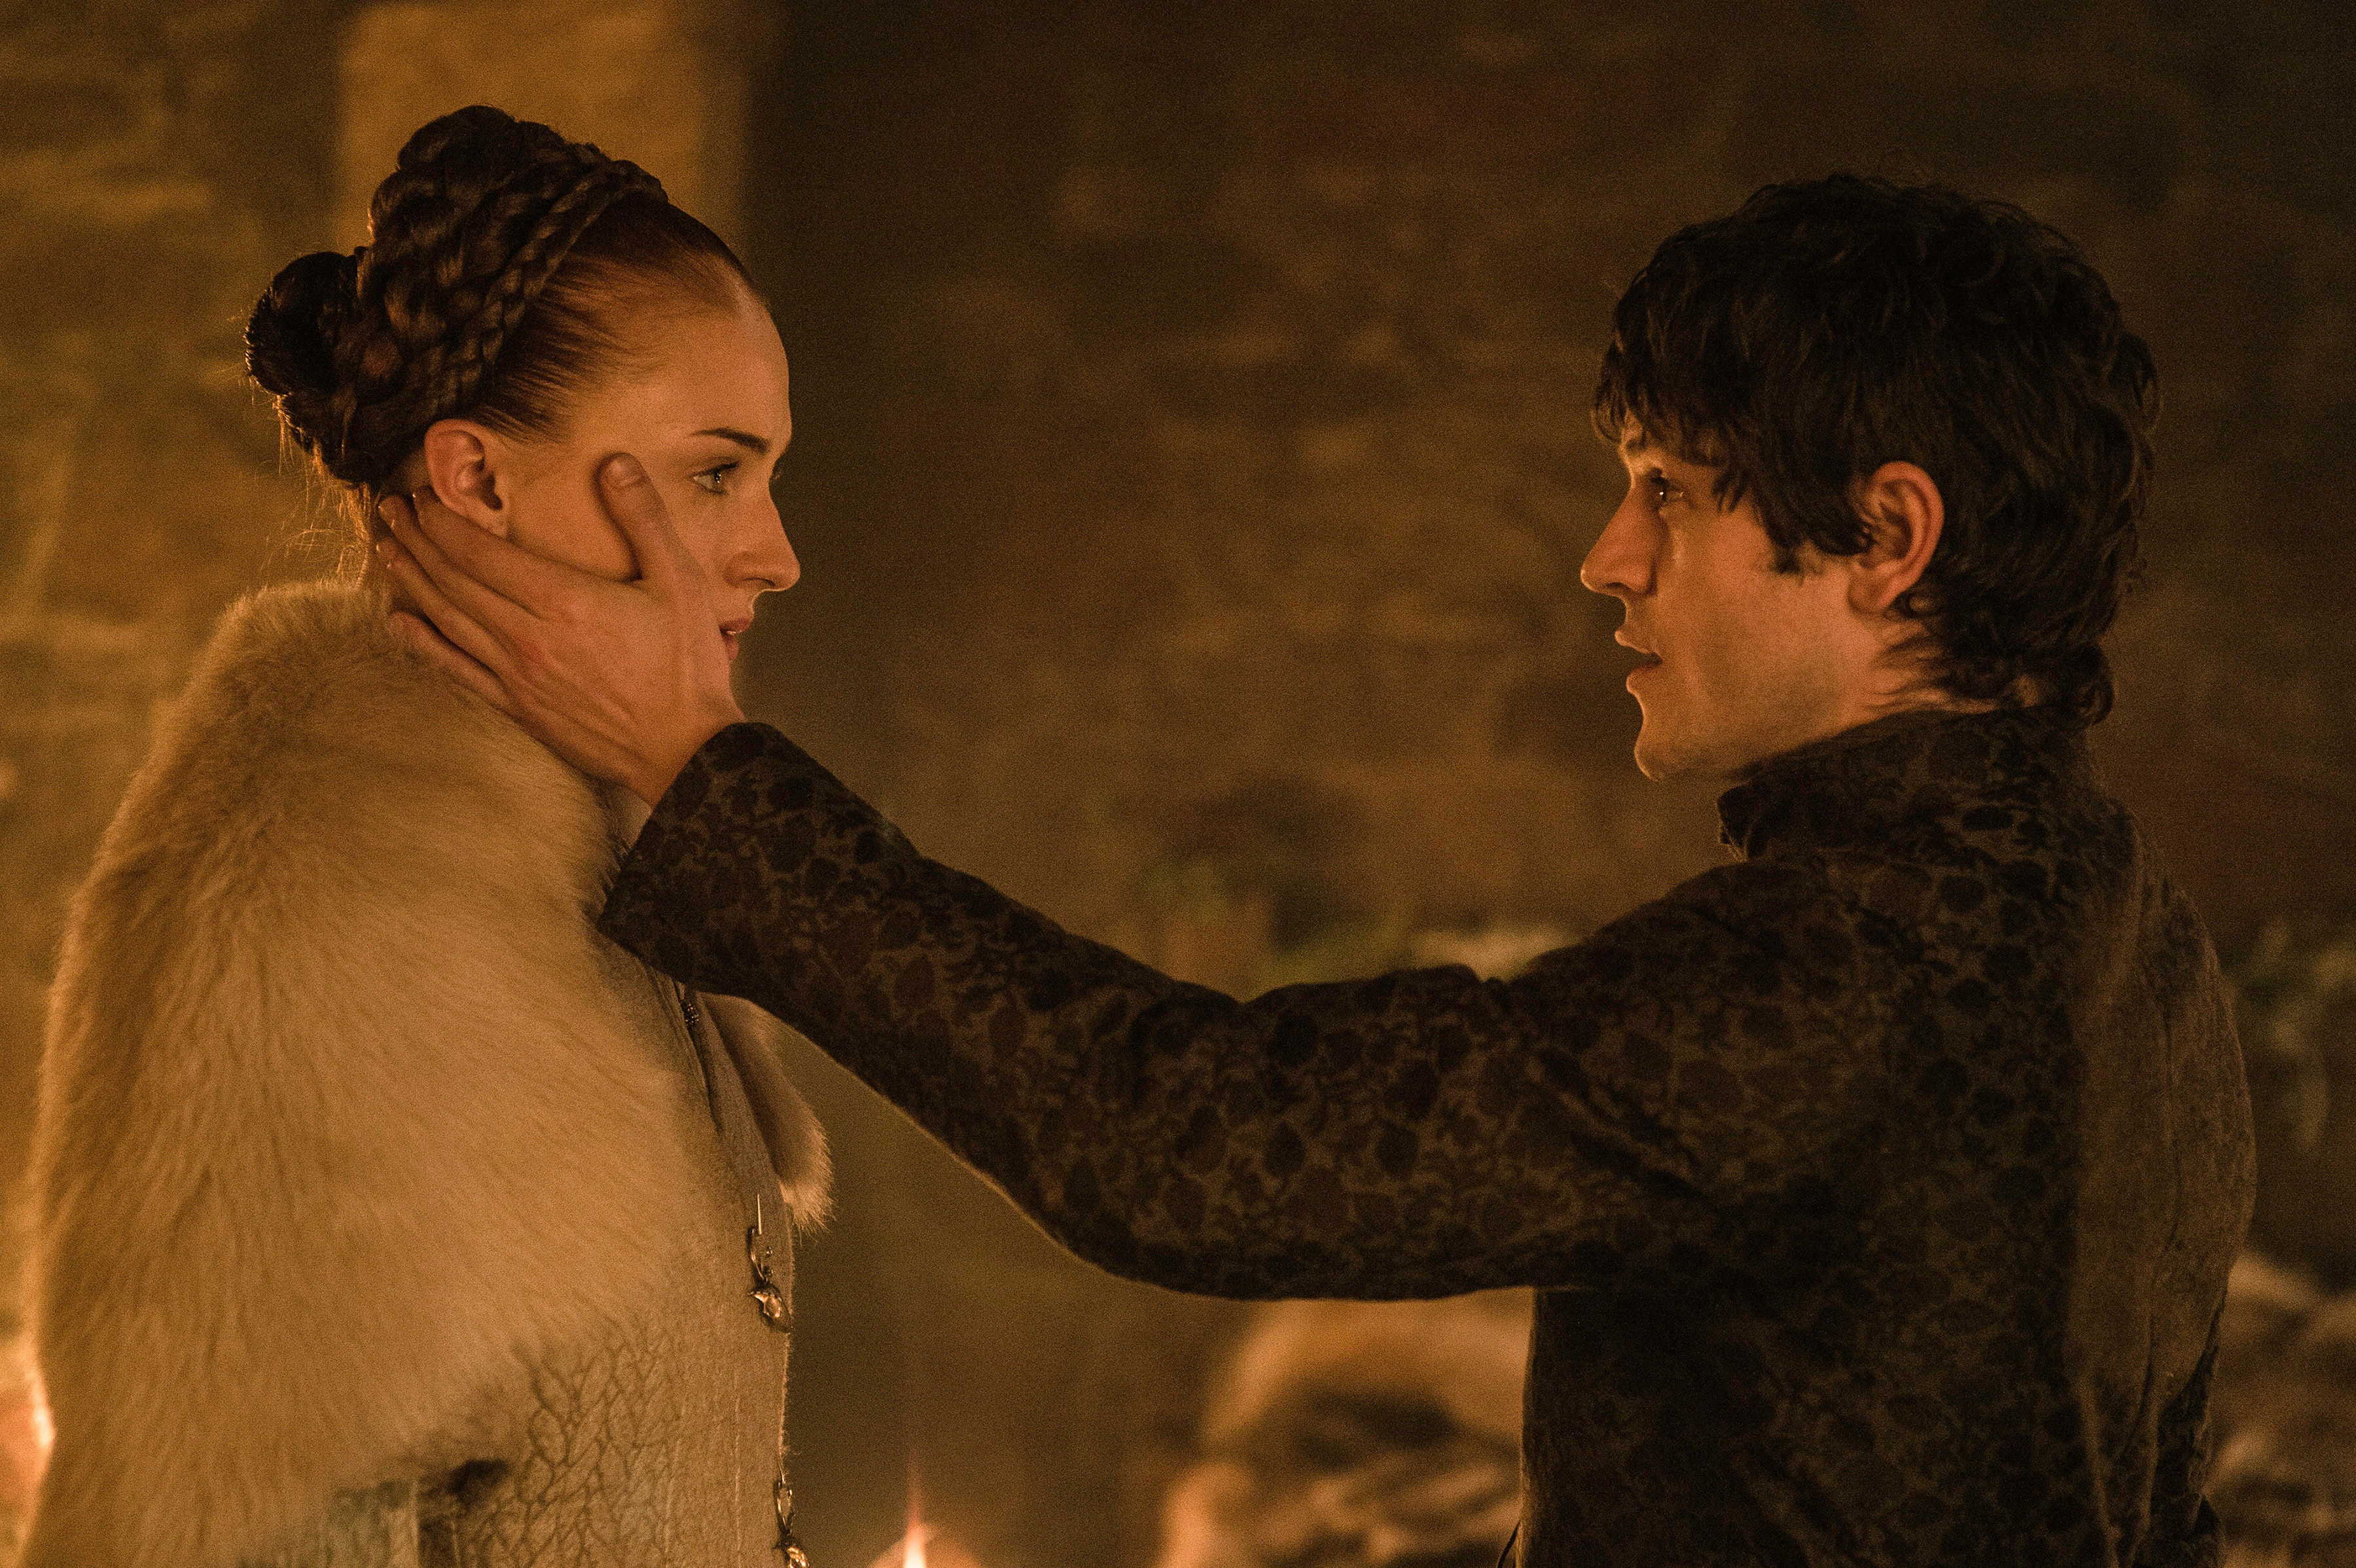 Who Does Sansa Lose Her Virginity To In The 'Game Of Thrones